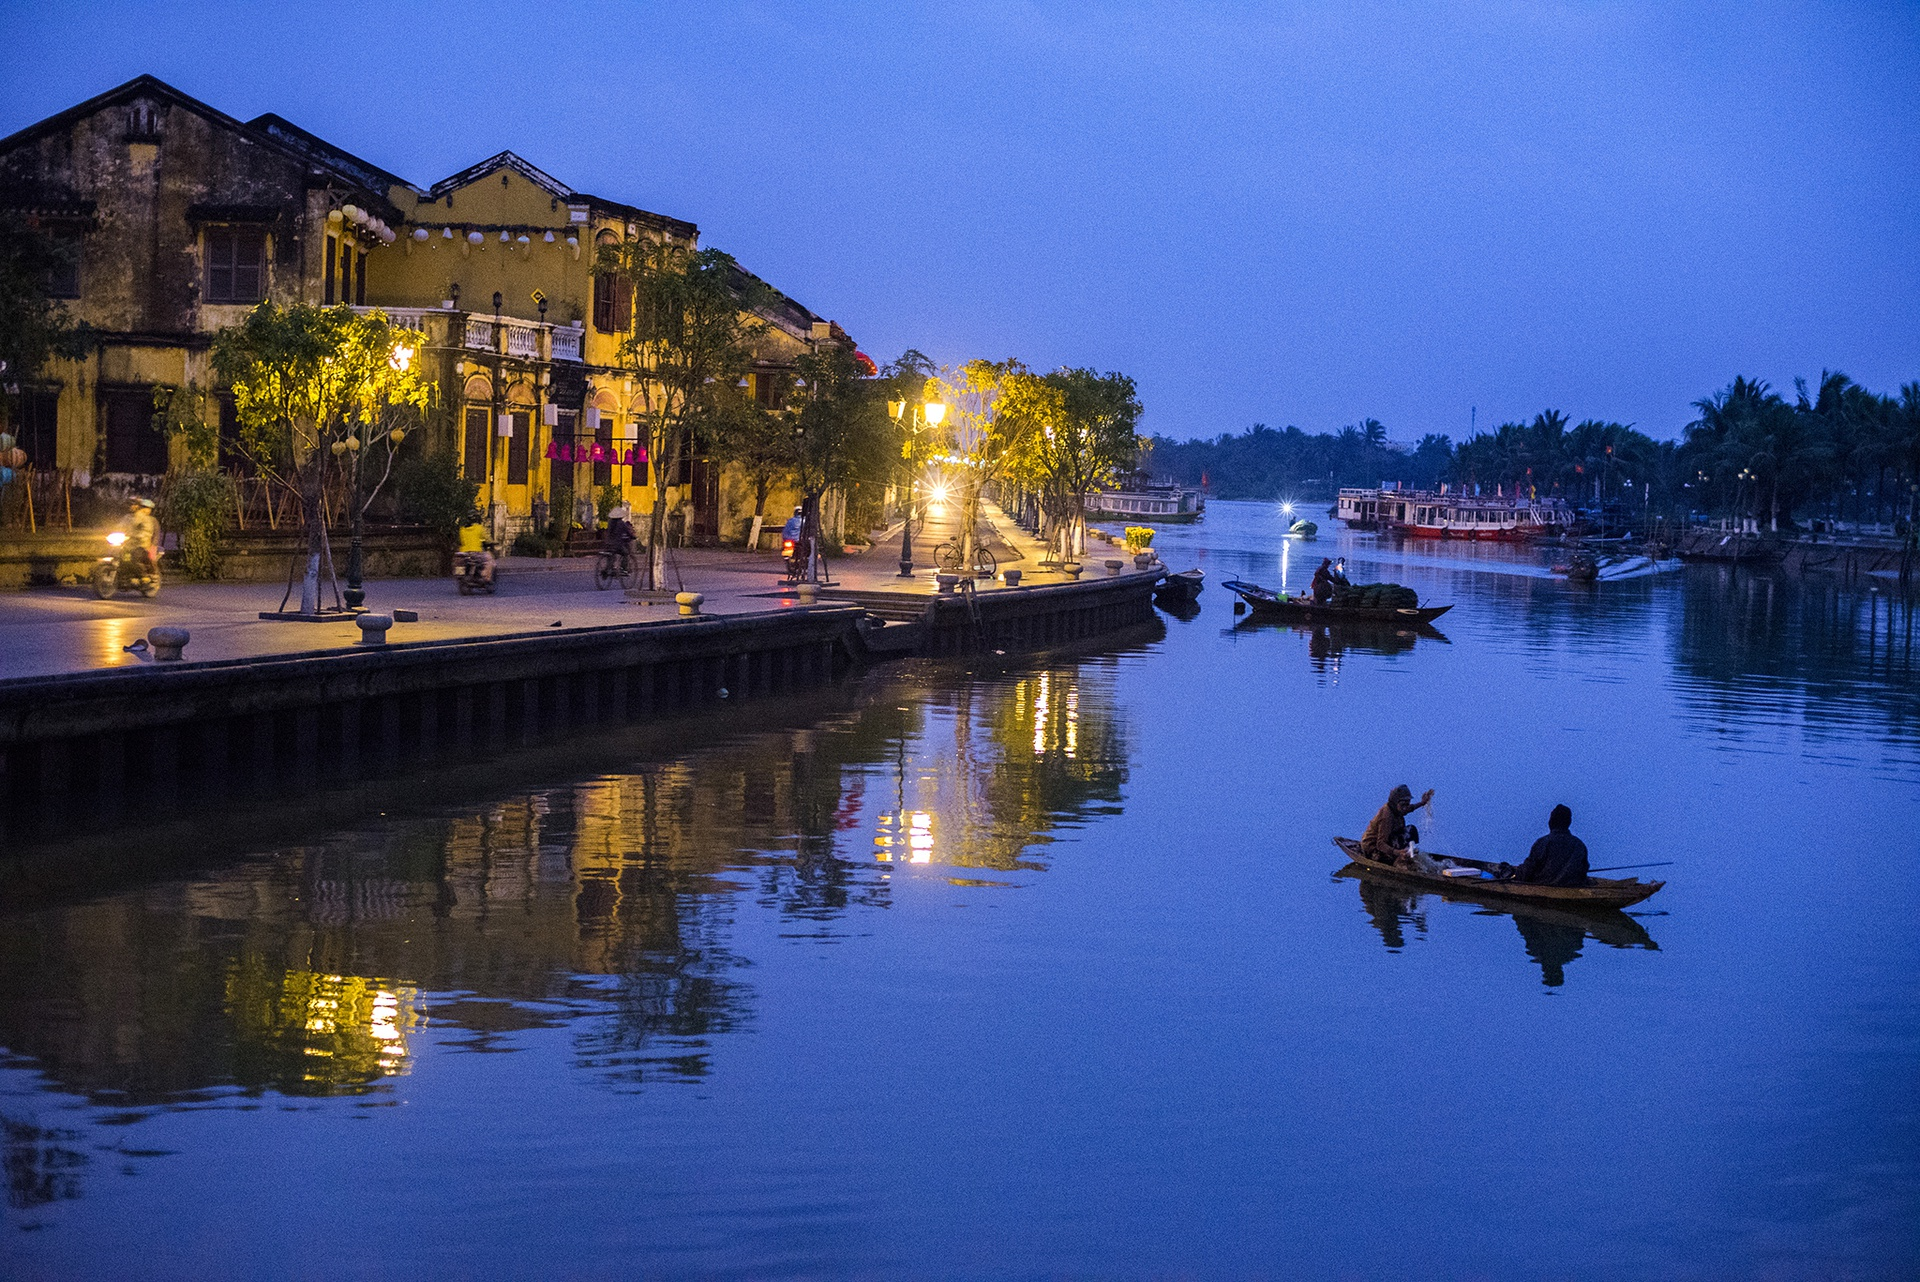 canh dep du lich Hoi An anh 2